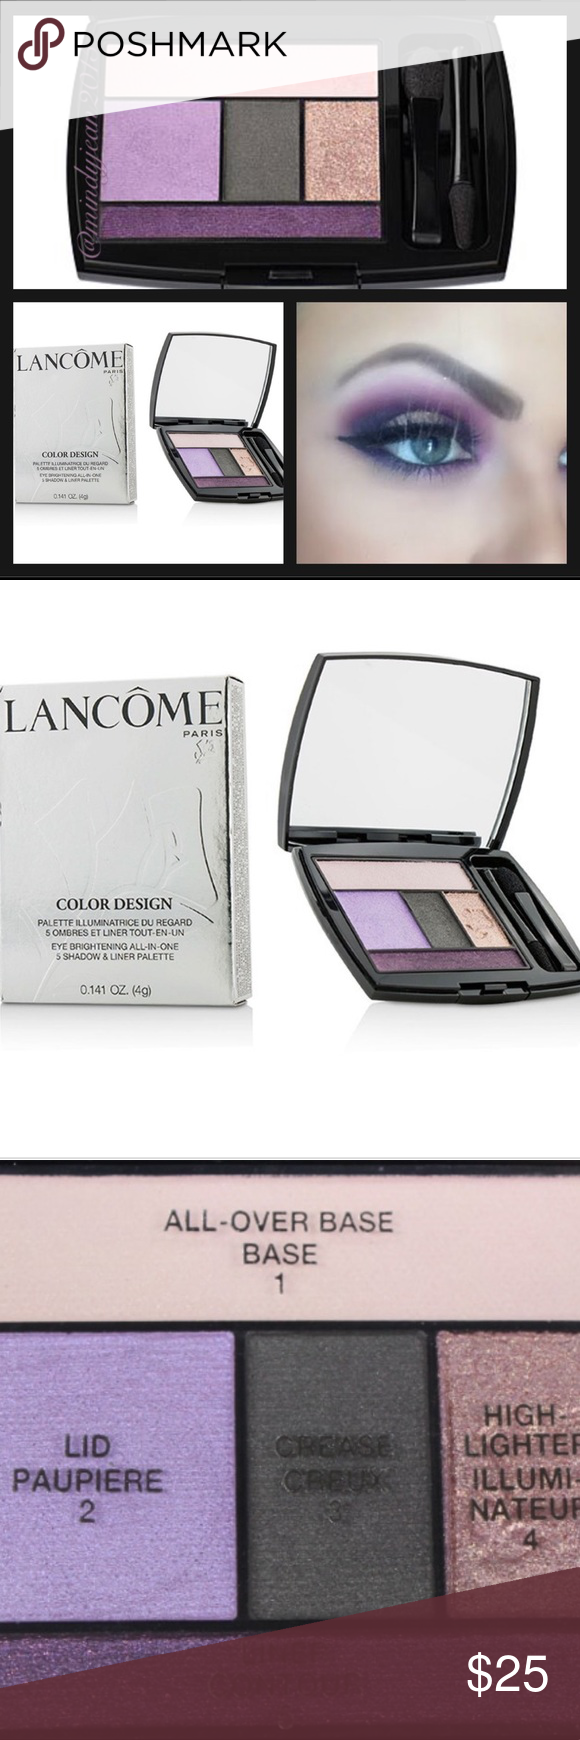 Lancôme Color Design Lavender Grace Shadow & Liner